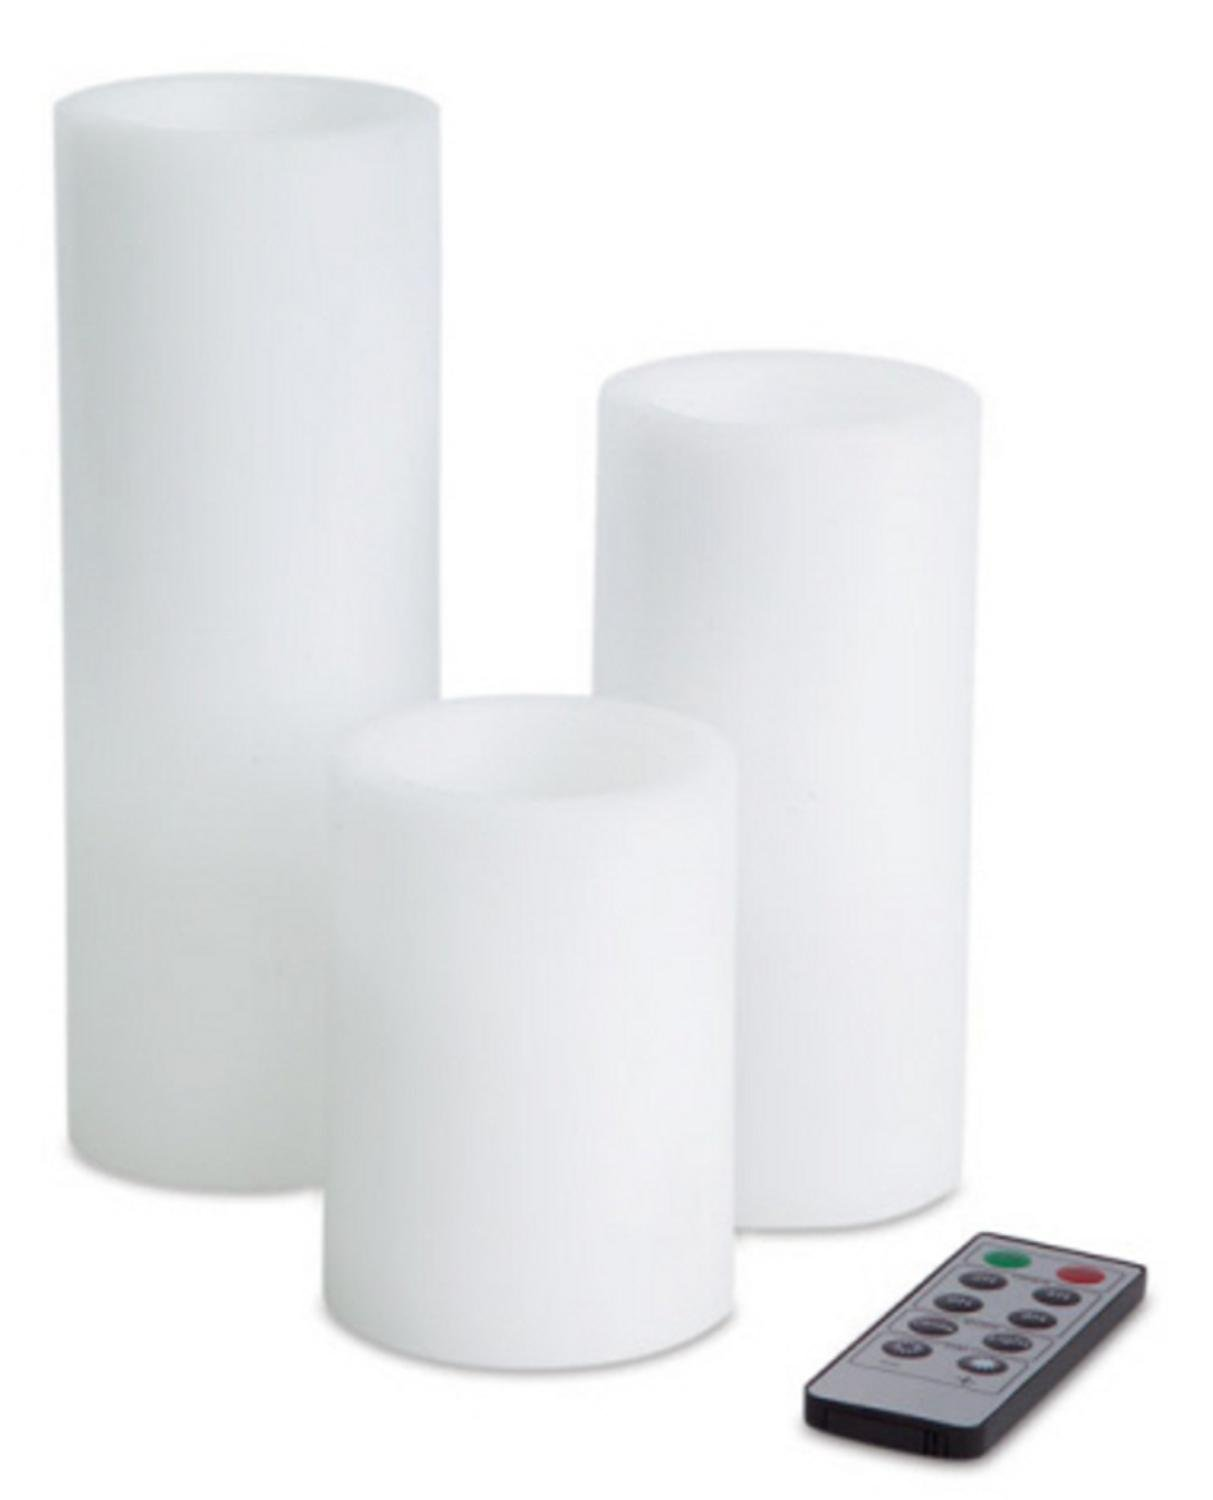 Pack of 6 White Remote Controlled Battery-Operated LED Flameless Pillar Candles